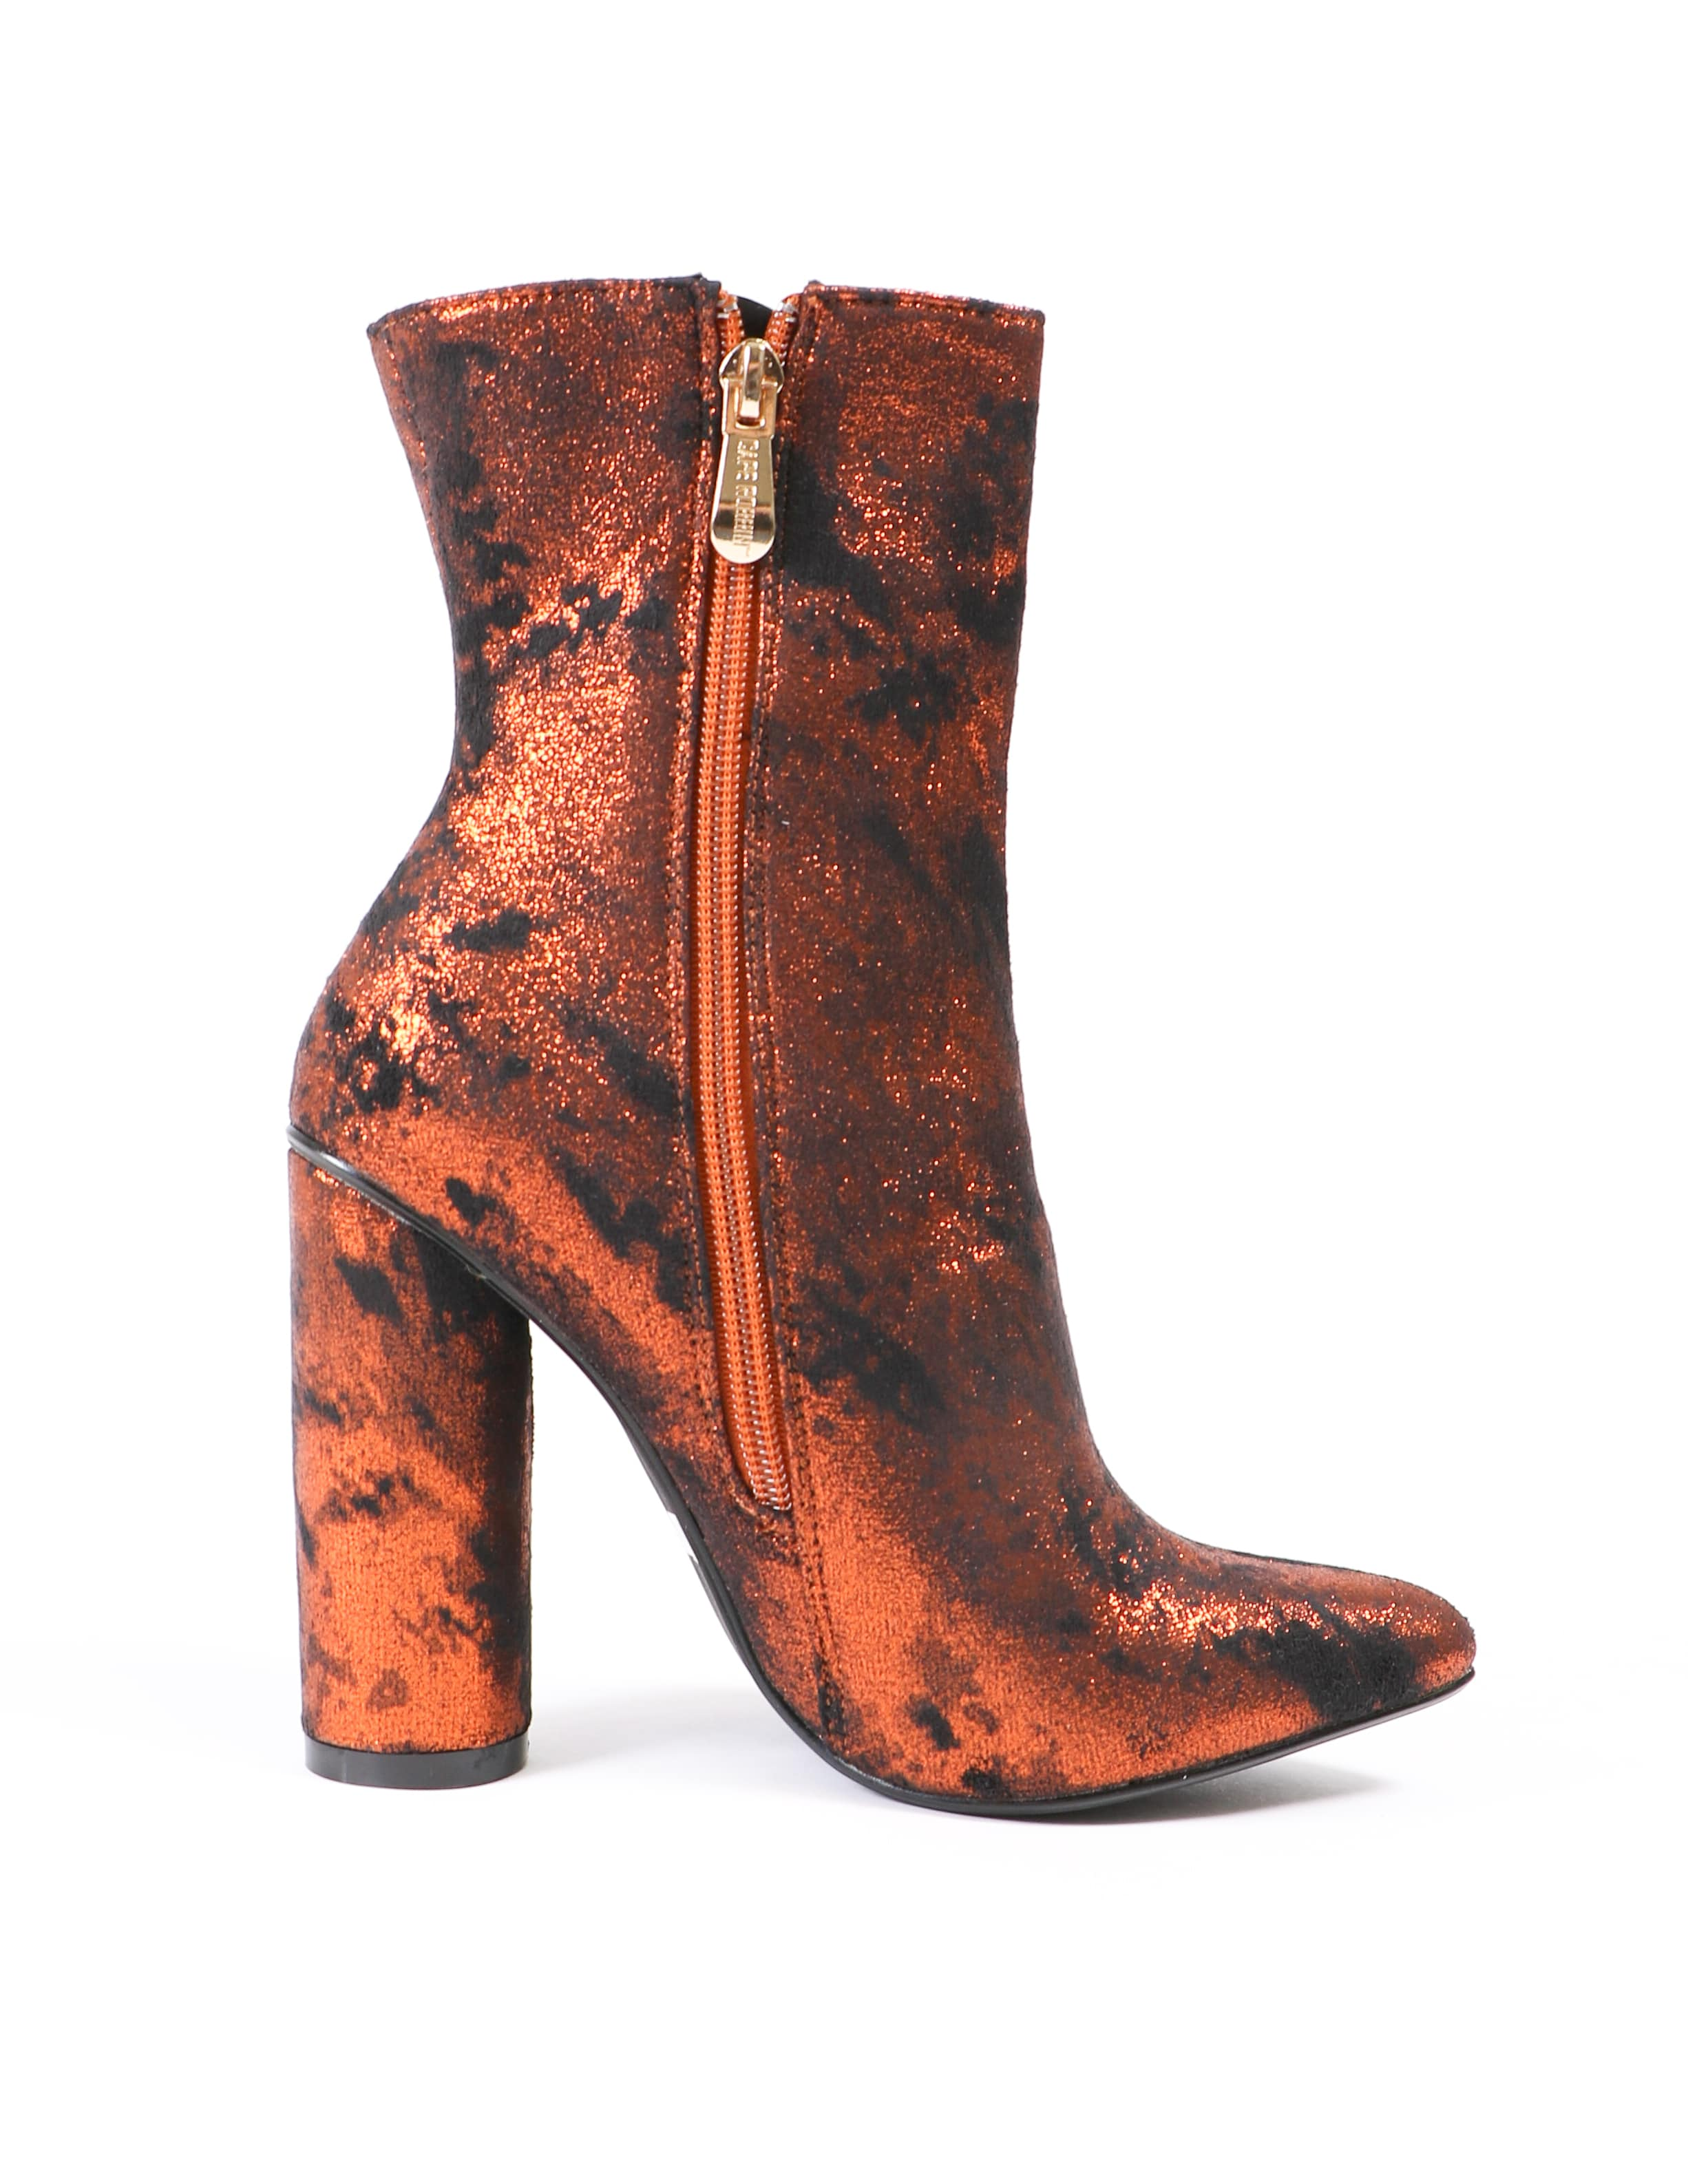 Inner zipper on the rust metallic fitted boot - elle bleu shoes